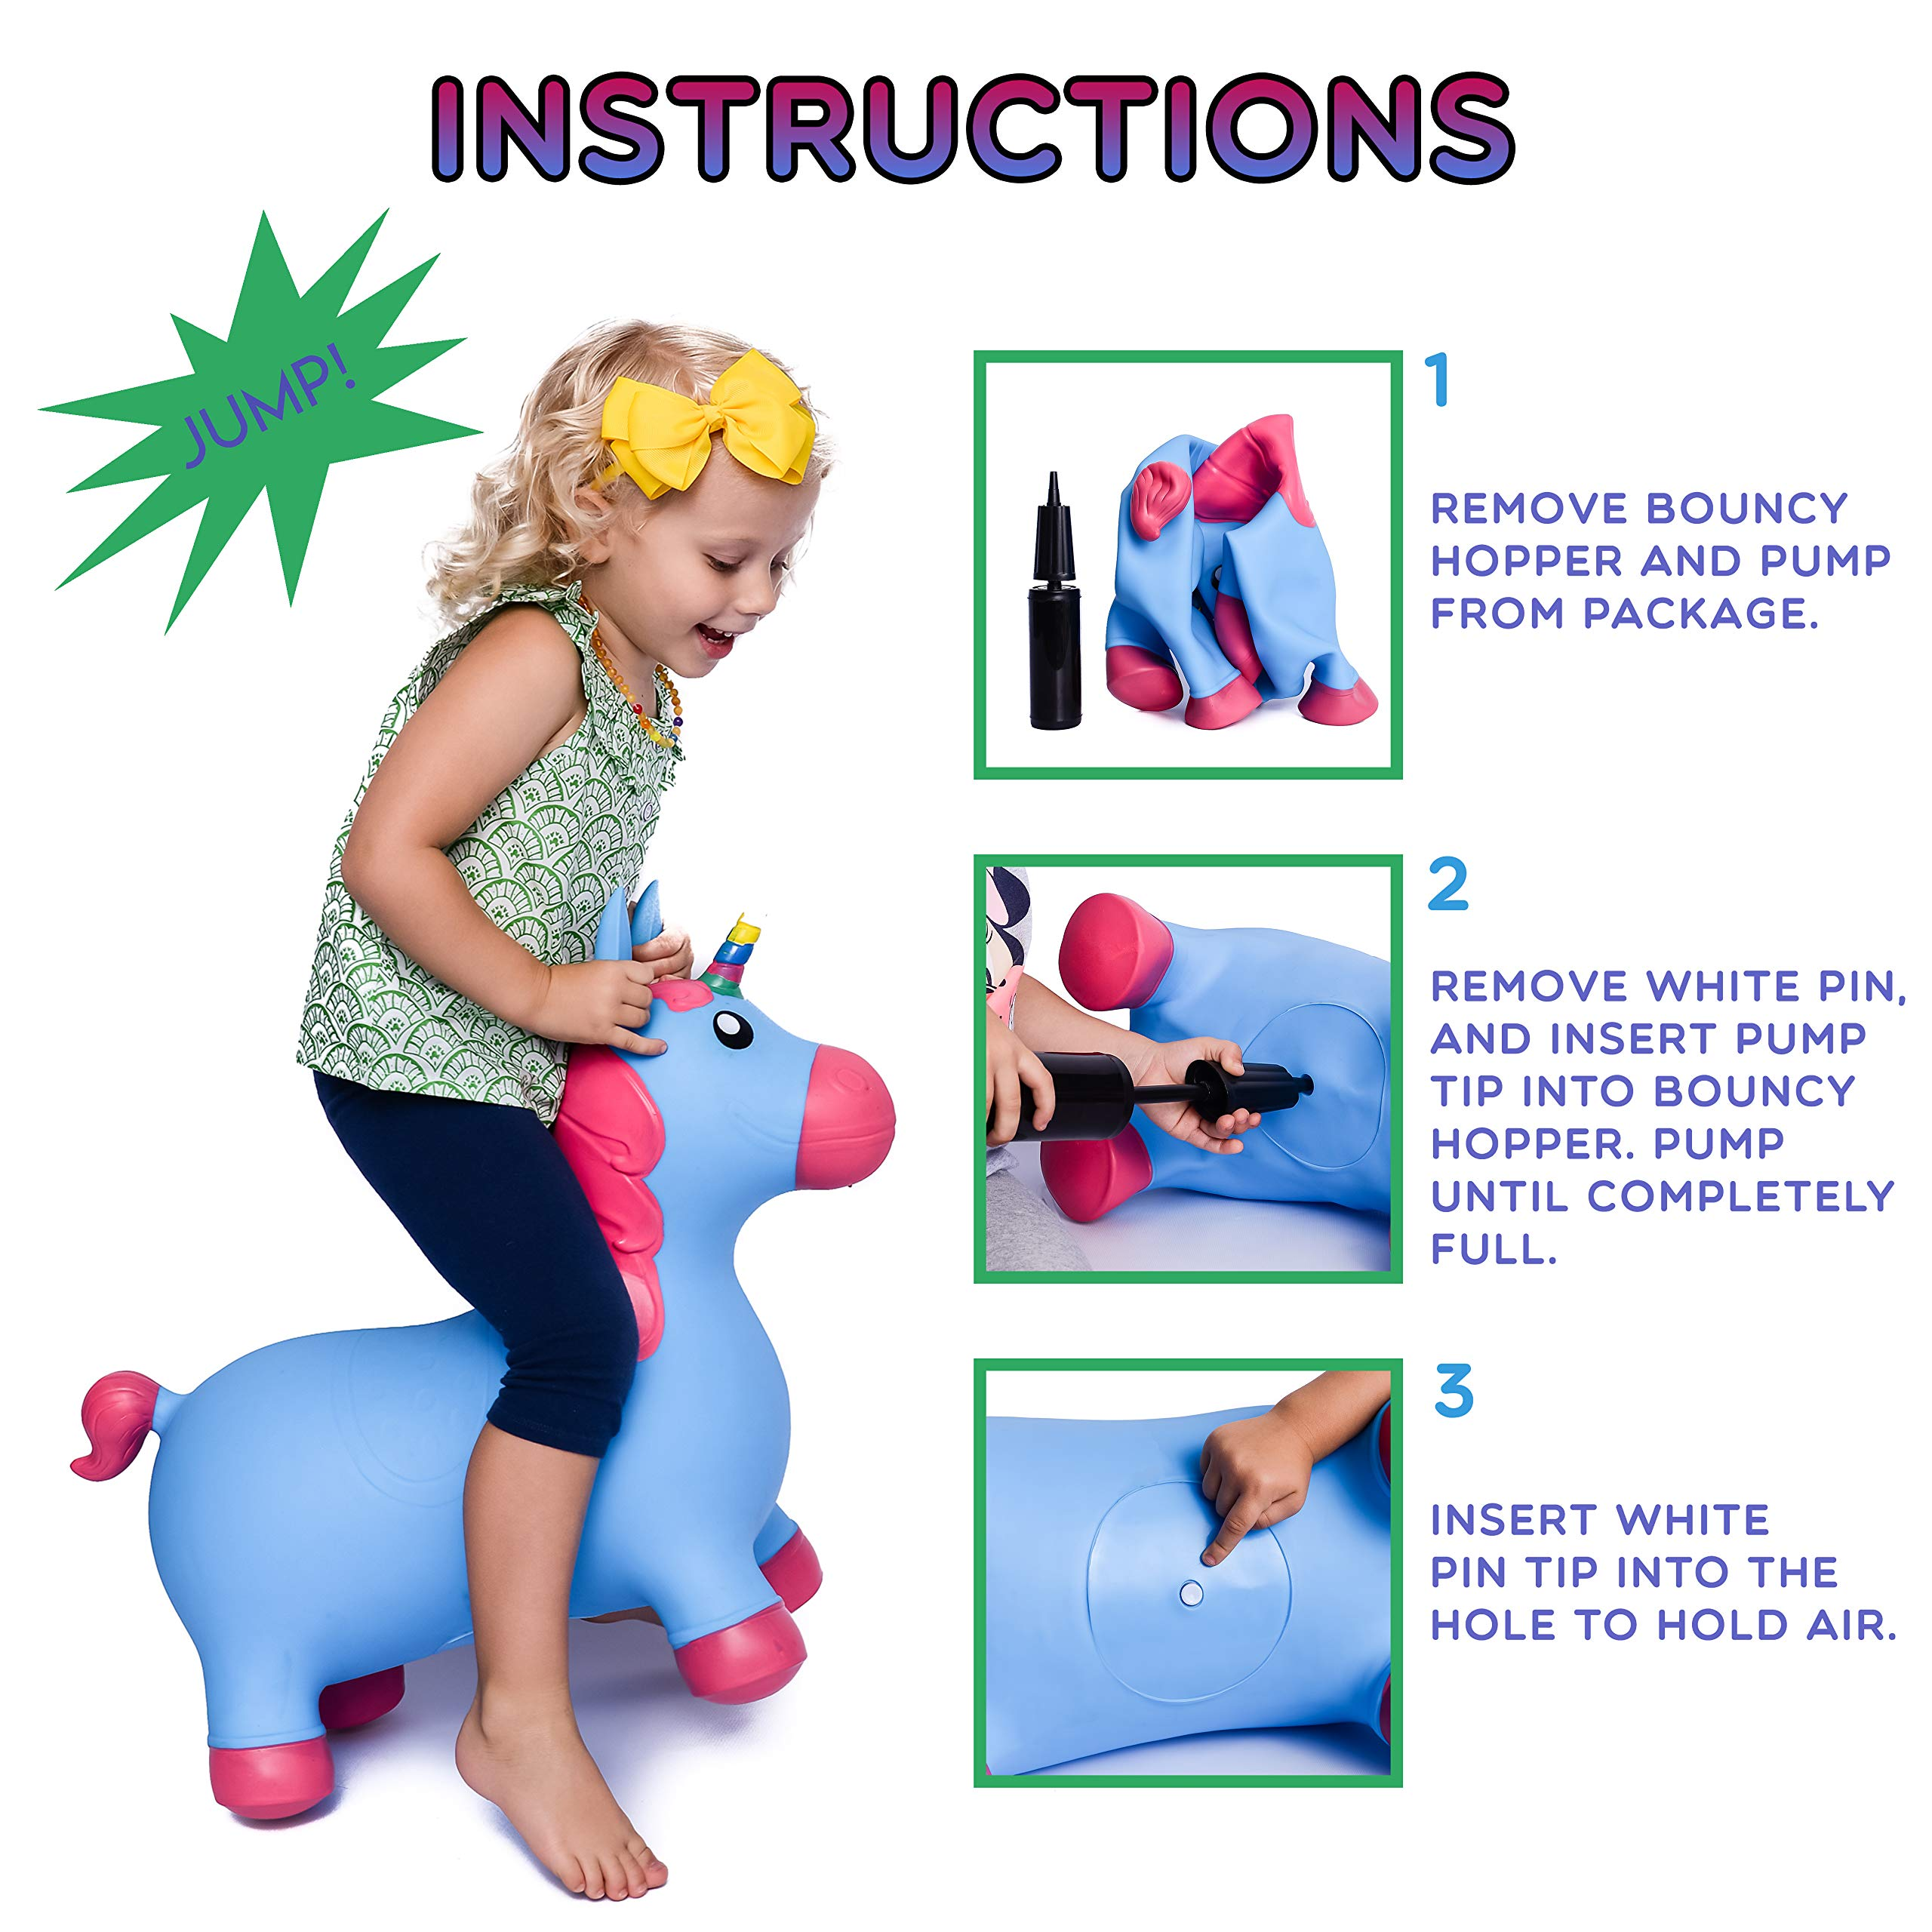 Kiddie Play Hopper Ball Unicorn Inflatable Hoppity Hop Bouncy Horse Toy (Pump Included) by Kiddie Play (Image #5)